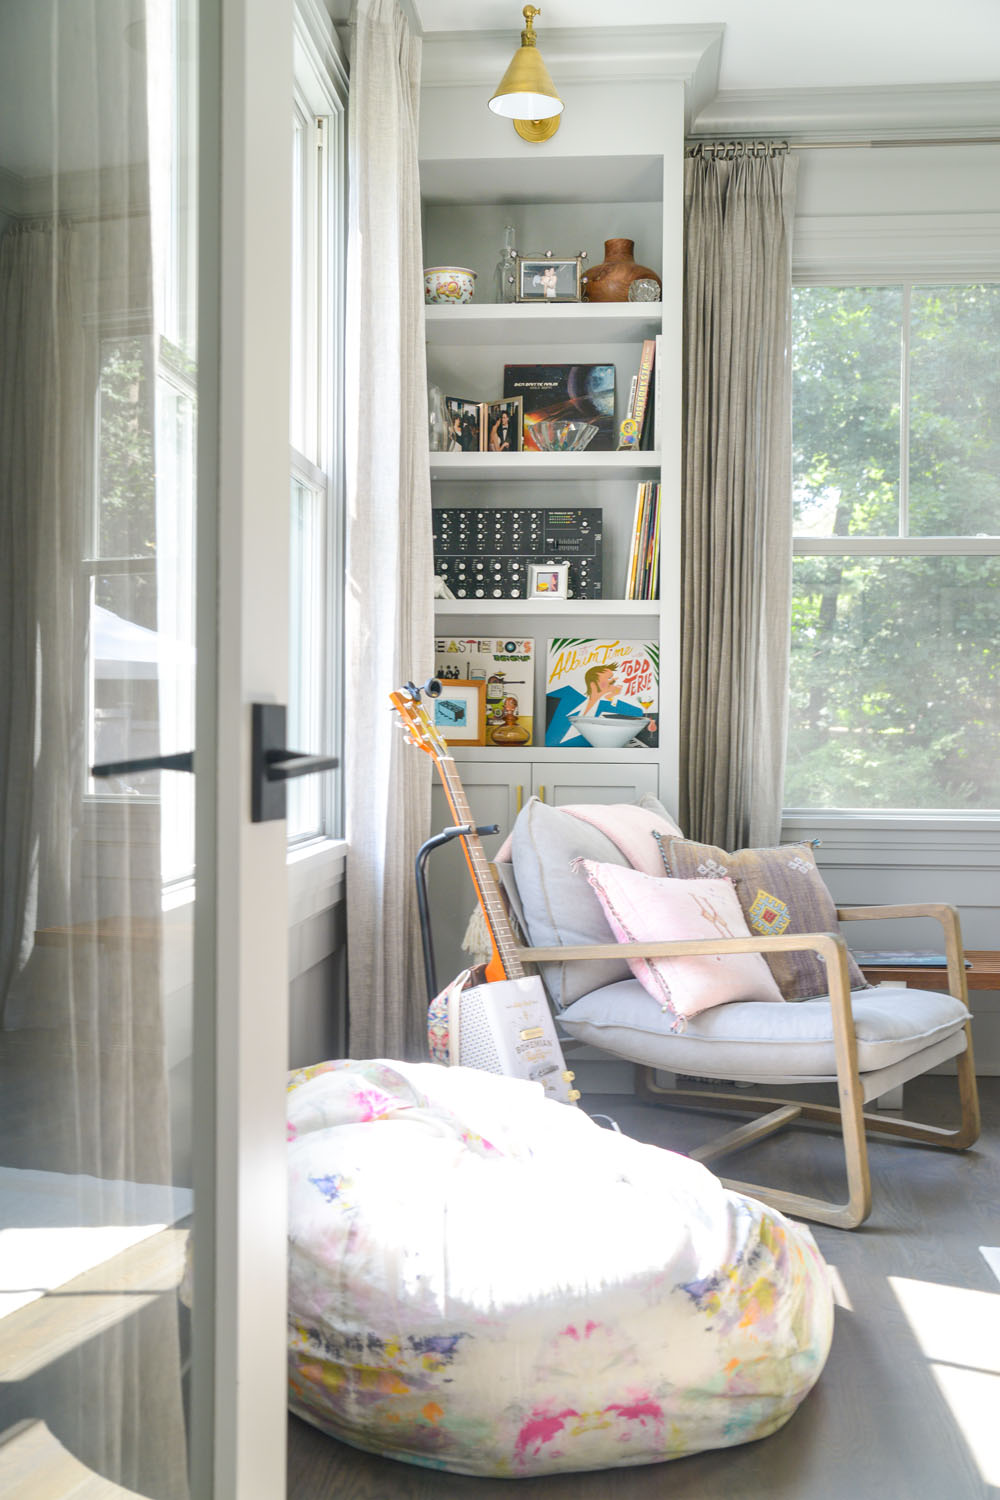 A Happy and Colorful Family Home in Connecticut by Kerri Rosenthal | Rue